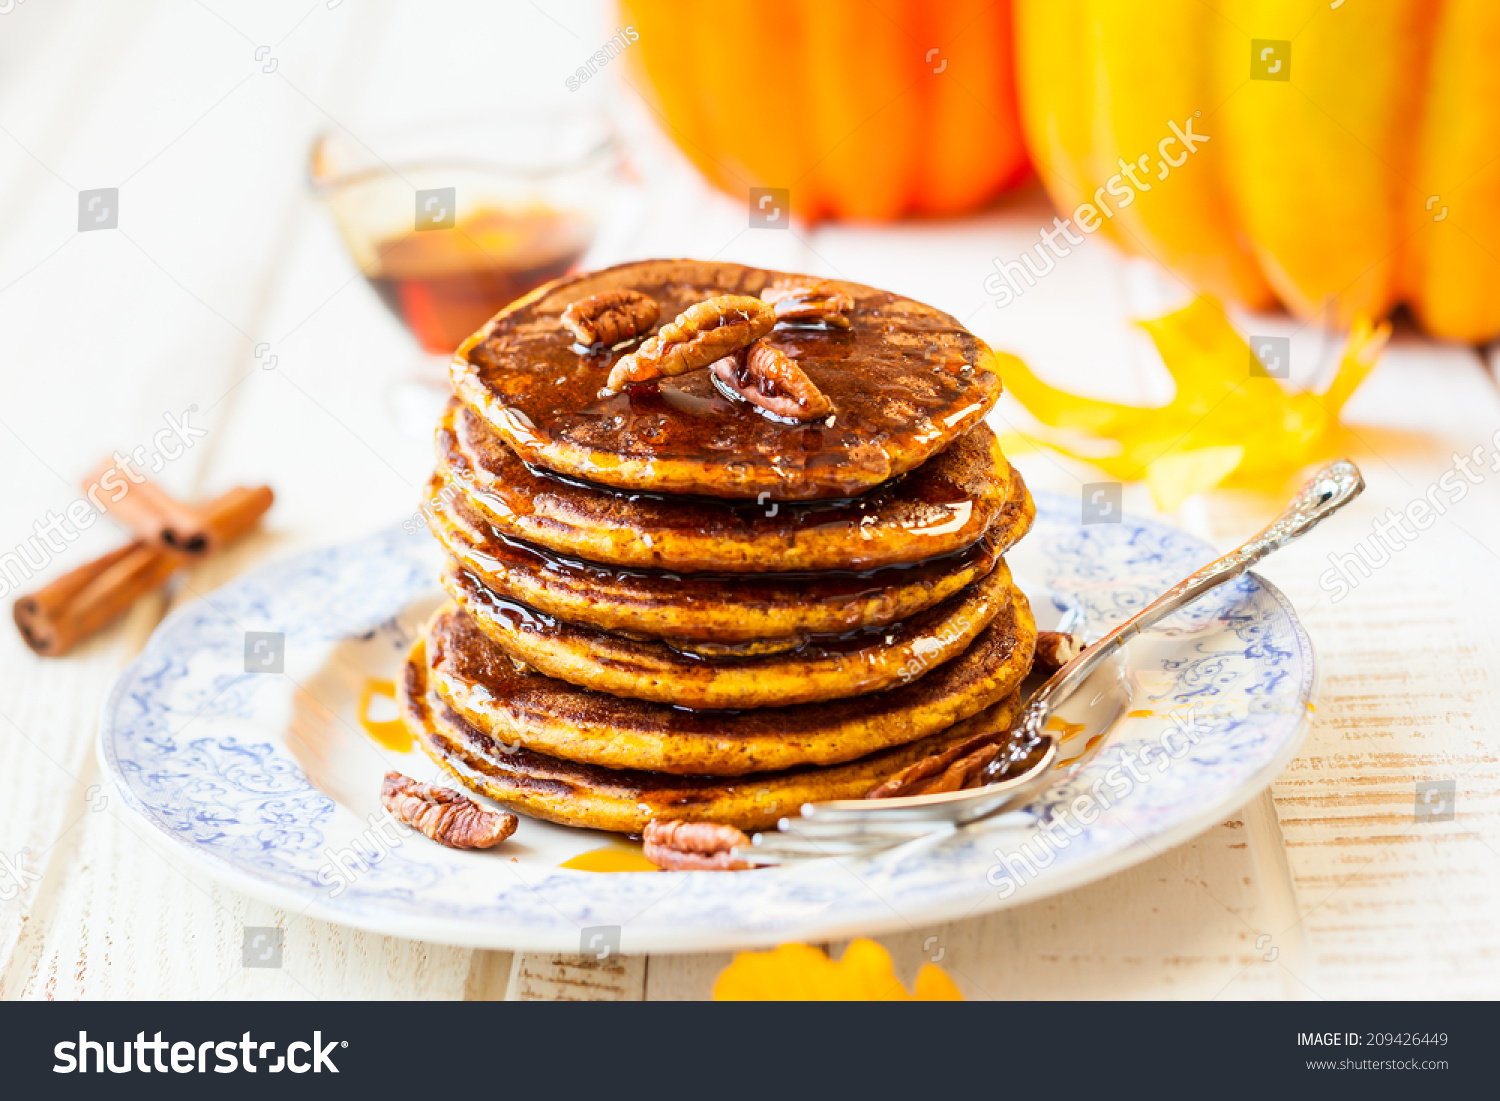 Spiced Pumpkin Pancakes With Maple Syrup And Pecan Stock ...